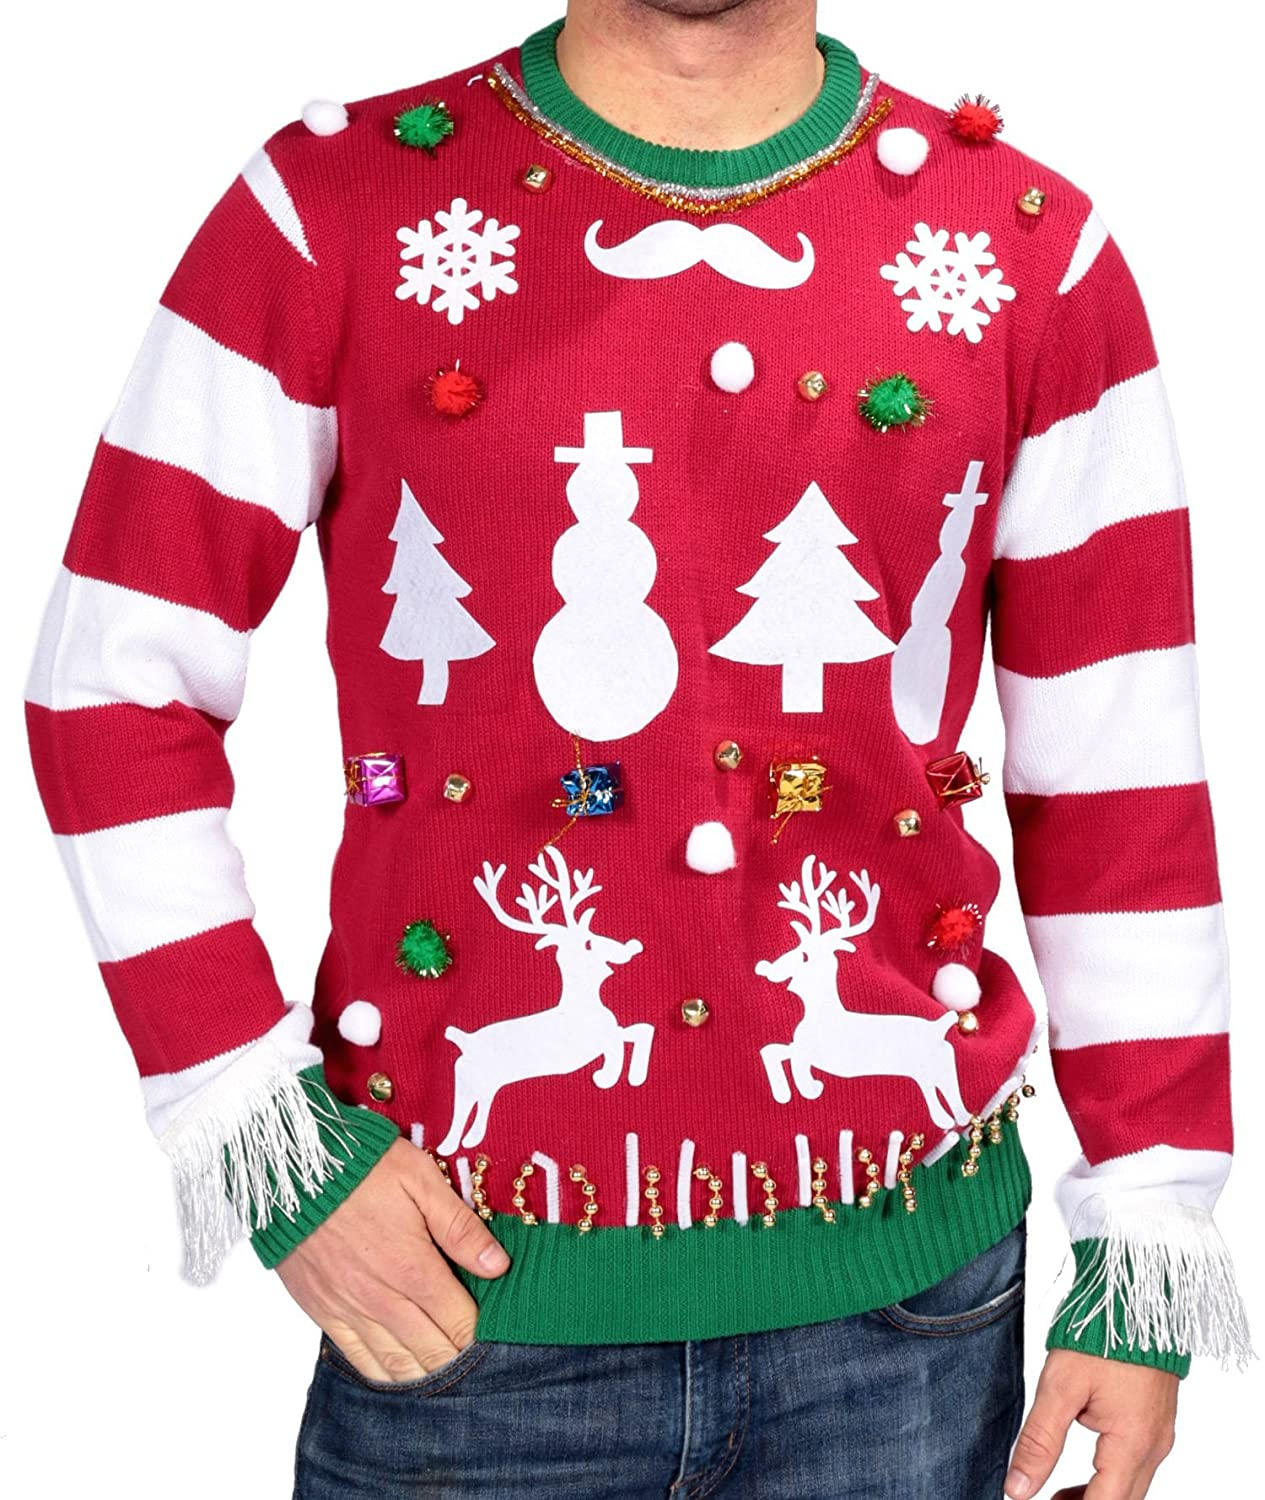 Amazon.com: Ugly Christmas Sweater Kit: Clothing